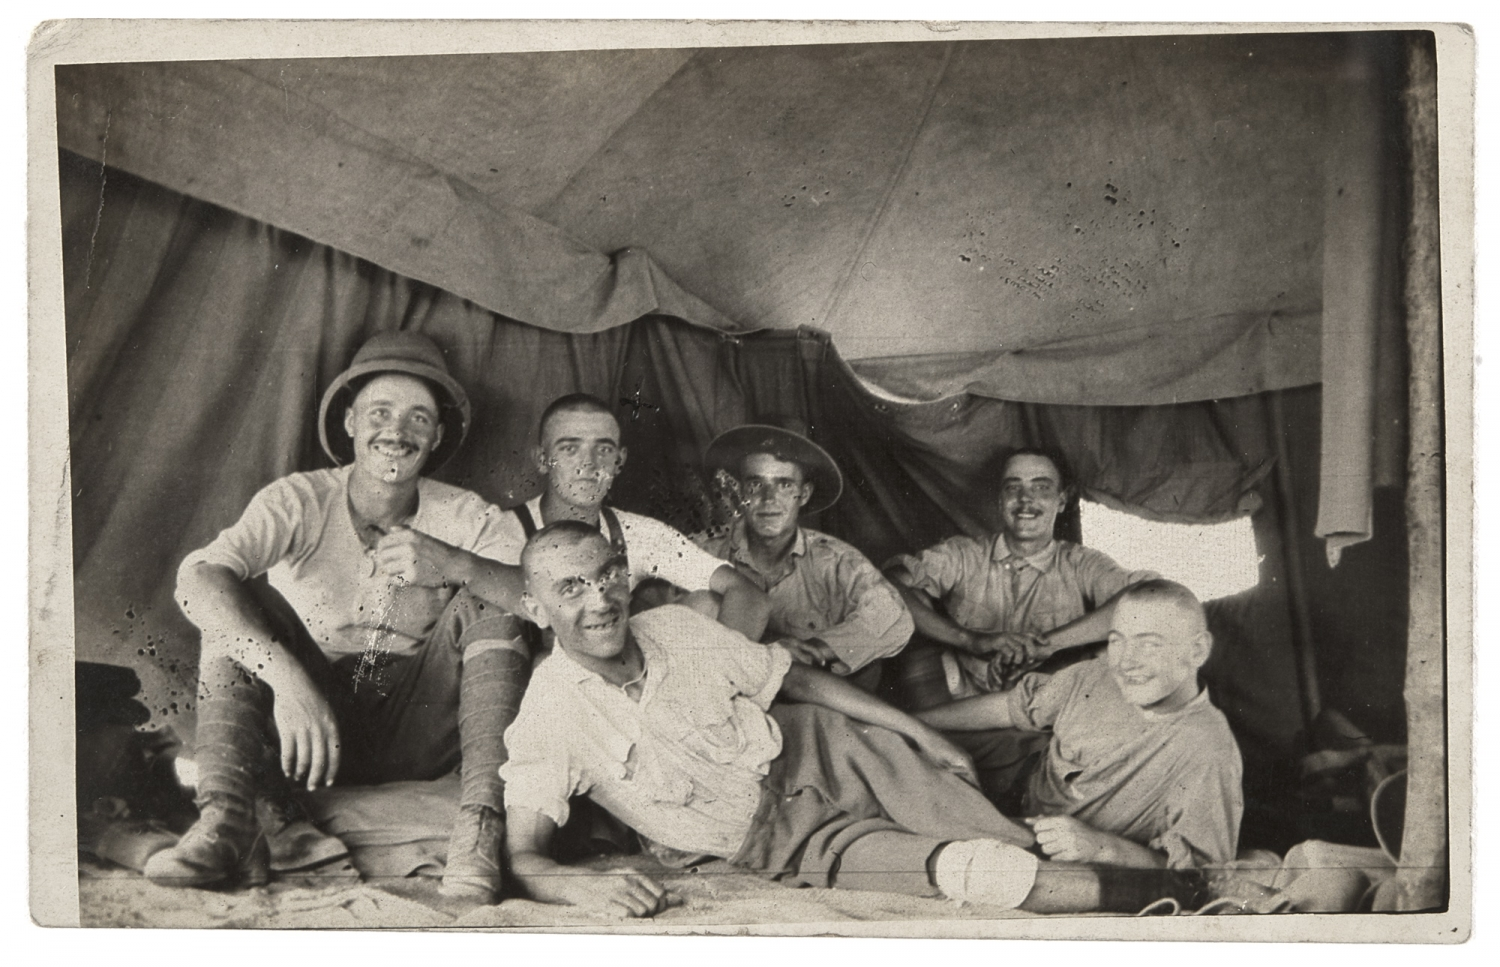 Black and white postcard photo print of five men, one reclining in front of the other four who are seated on ground.